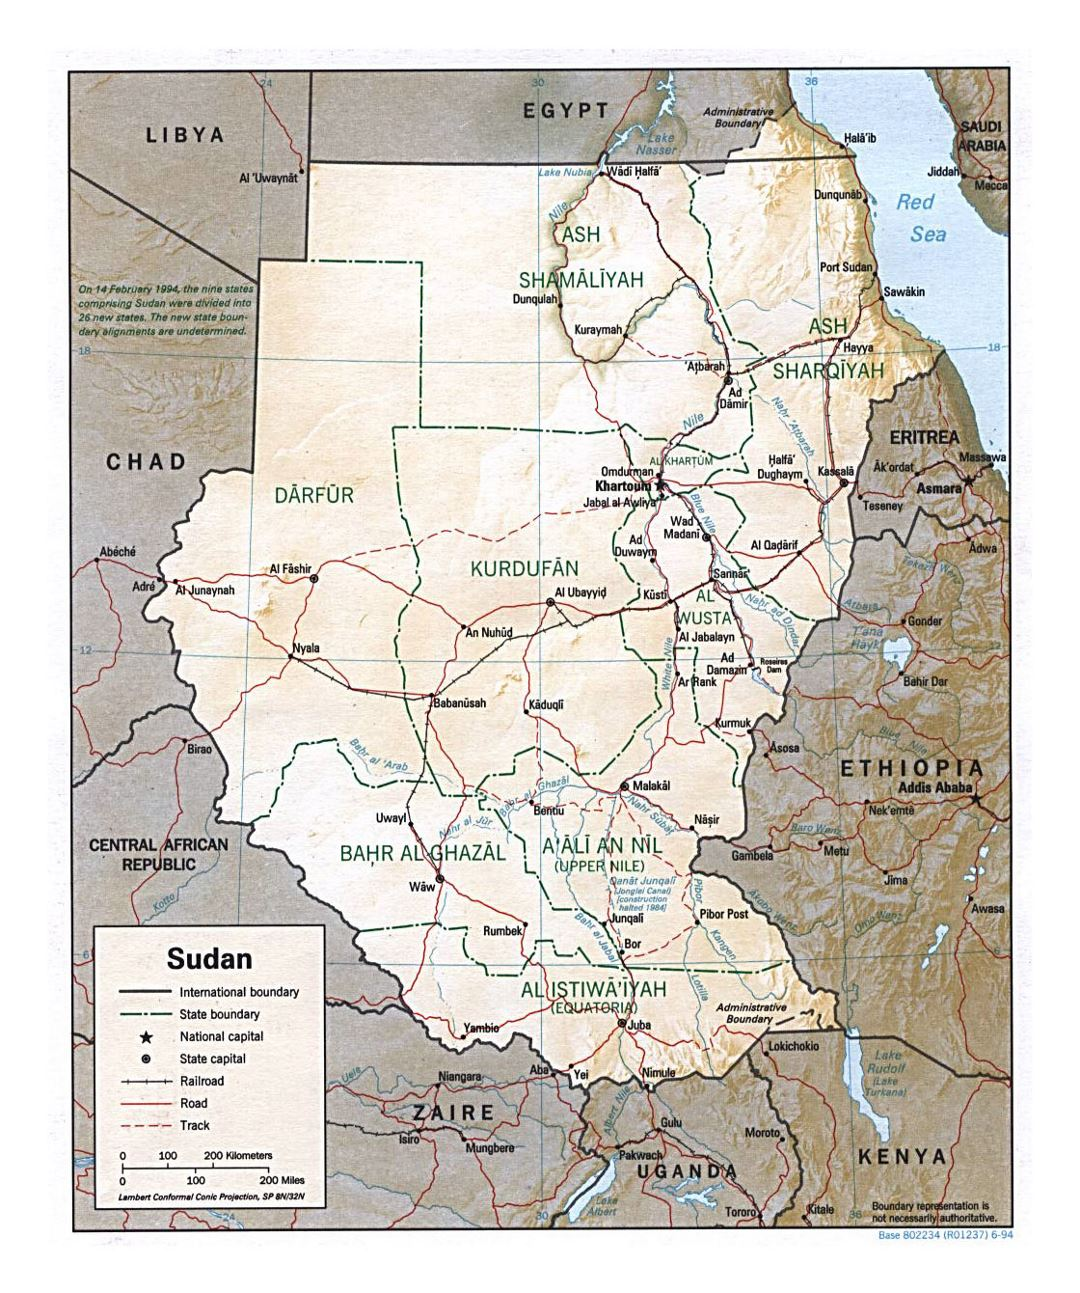 Detailed political and administrative map of Sudan with relief, roads, railroads and major cities - 1994